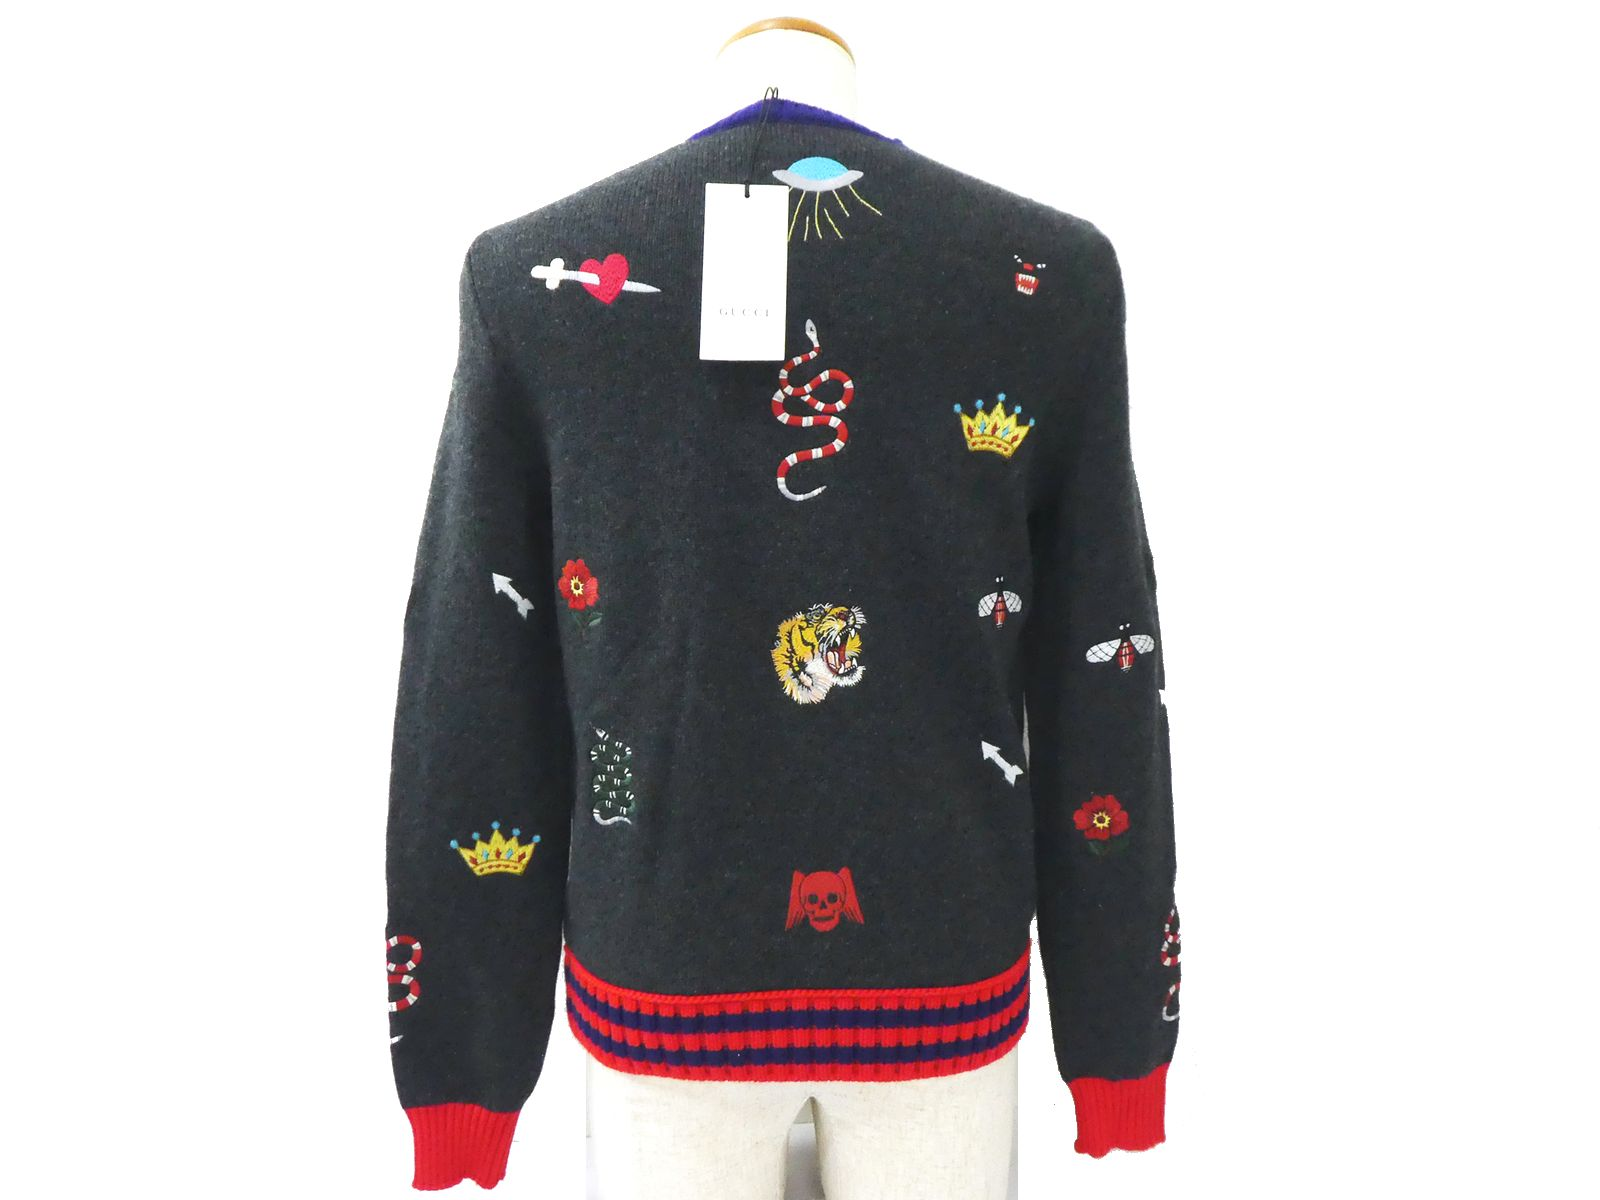 c0e81d621ba97 Details about Auth Gucci Wool Crewneck Sweater Embroideries Snake Tiger Men  XS Unused D1146